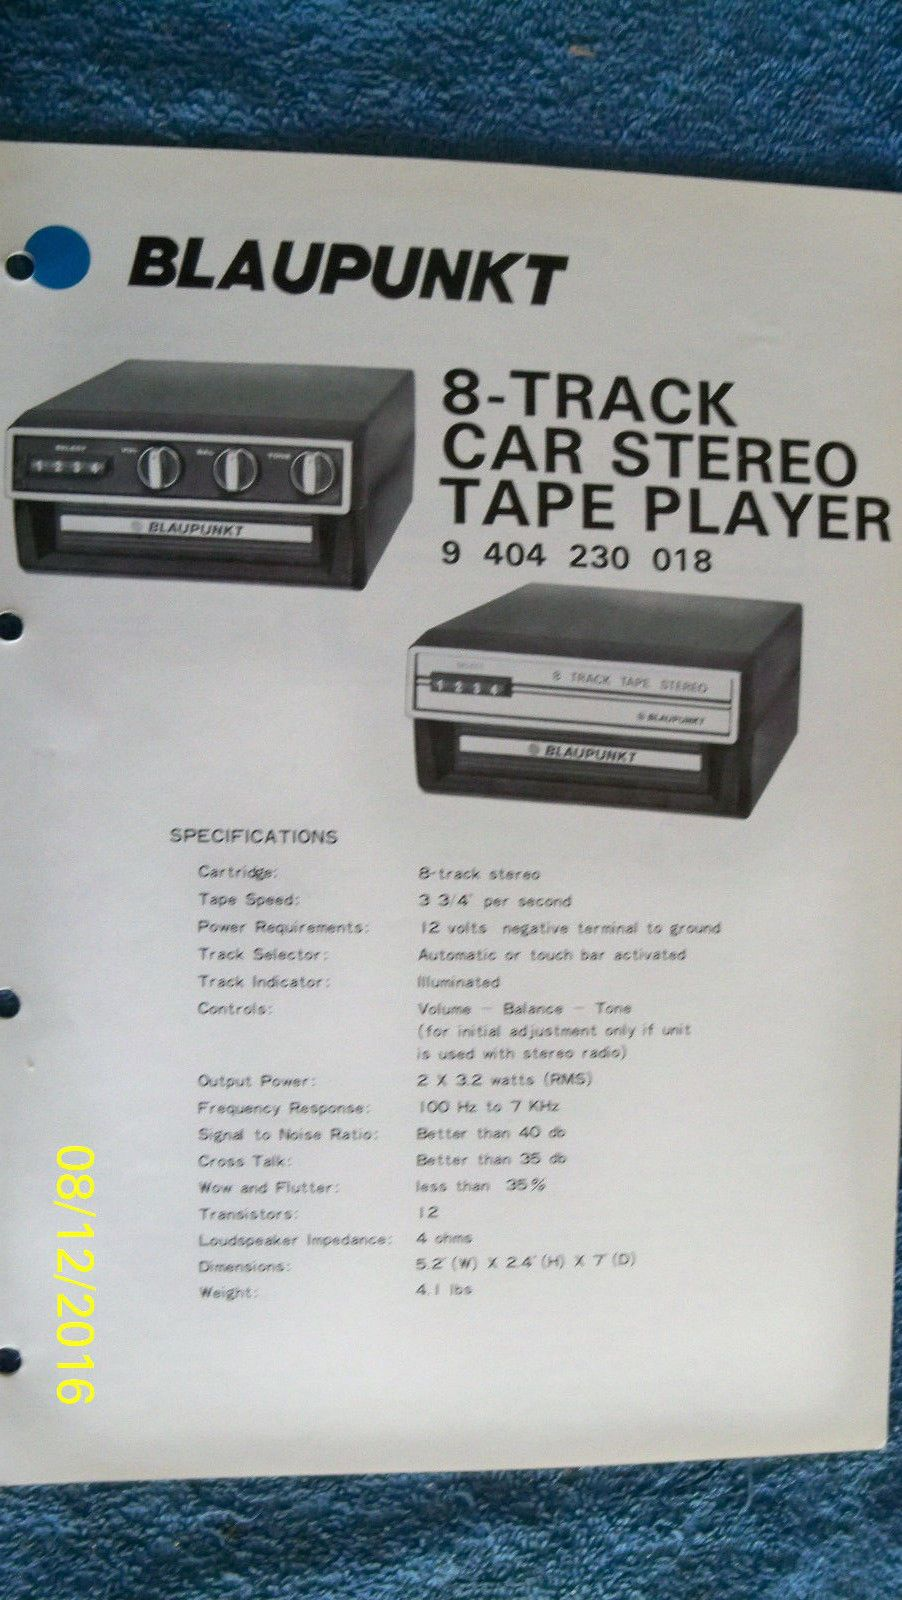 Blaupunkt car audio service #manual #8-track tape #player 9 404 230